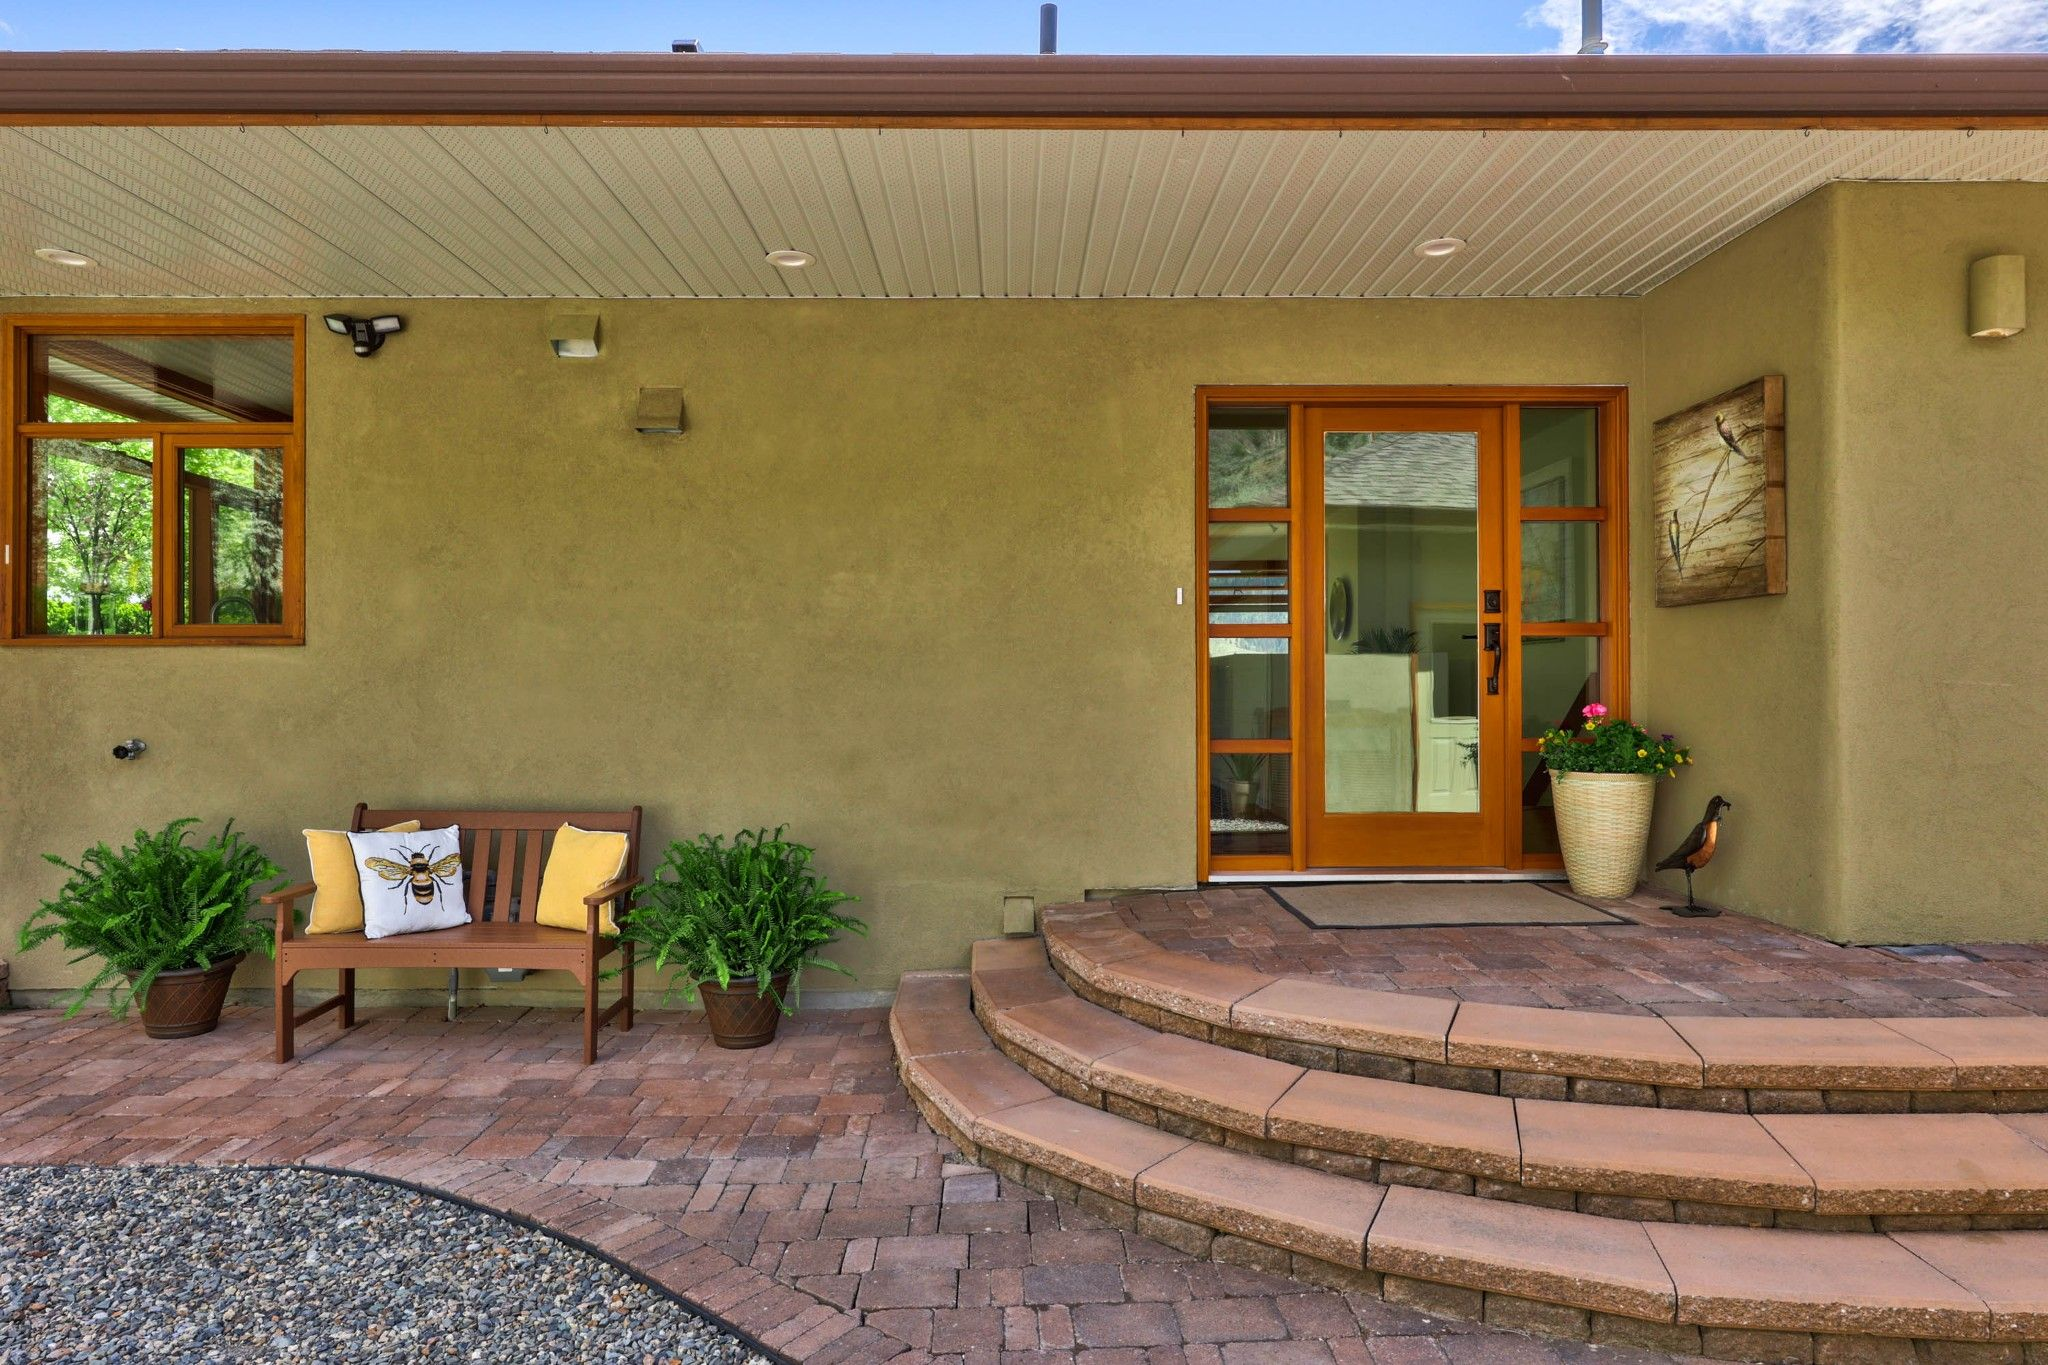 Photo 4: Photos: 3299 E Shuswap Road in Kamloops: South Thompson Valley House for sale : MLS®# 162162